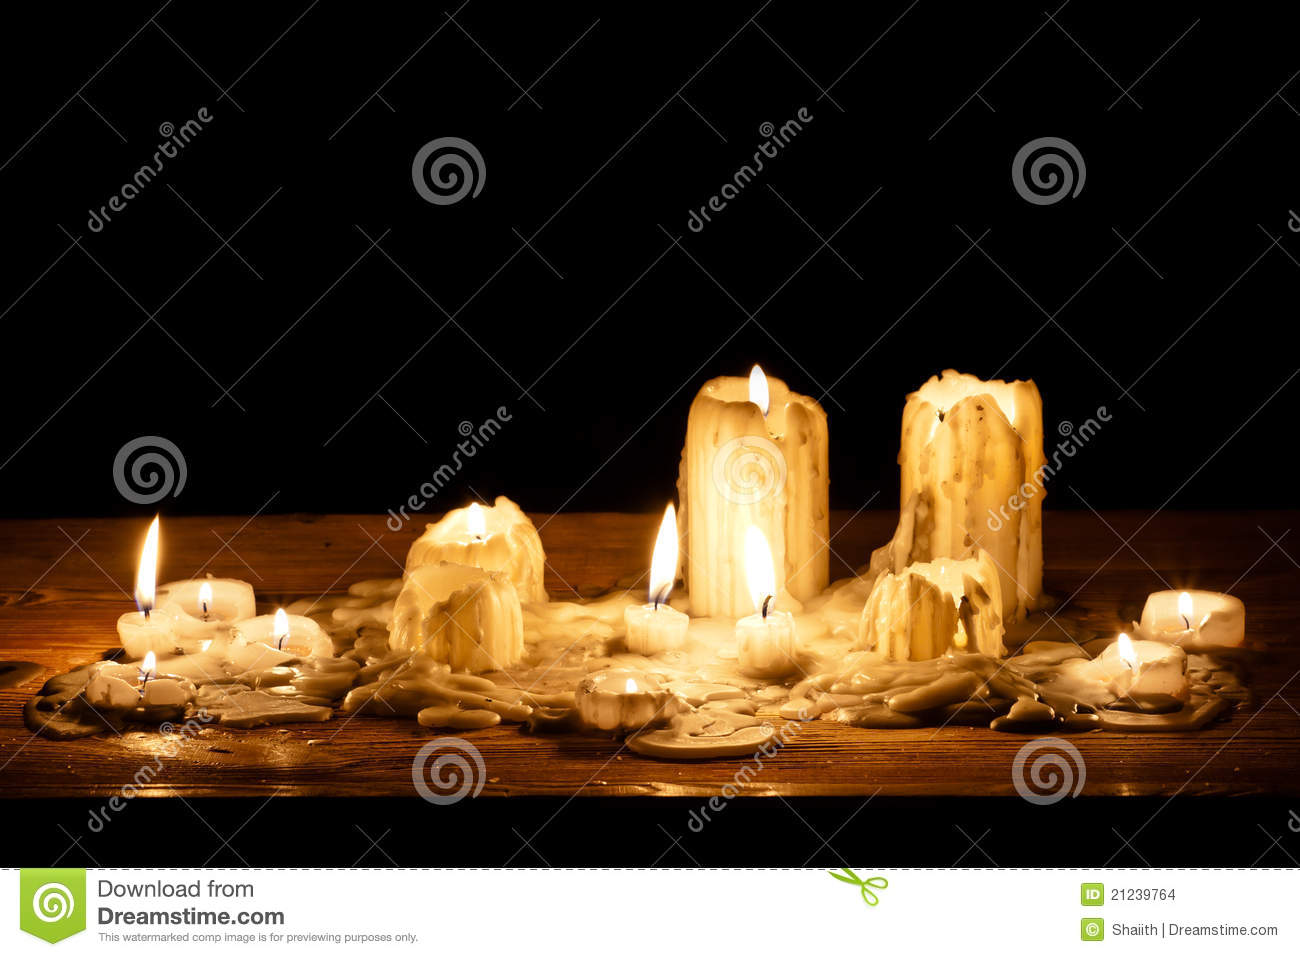 Melting Candle In Wooden Shelf Stock Images - Image: 21239764